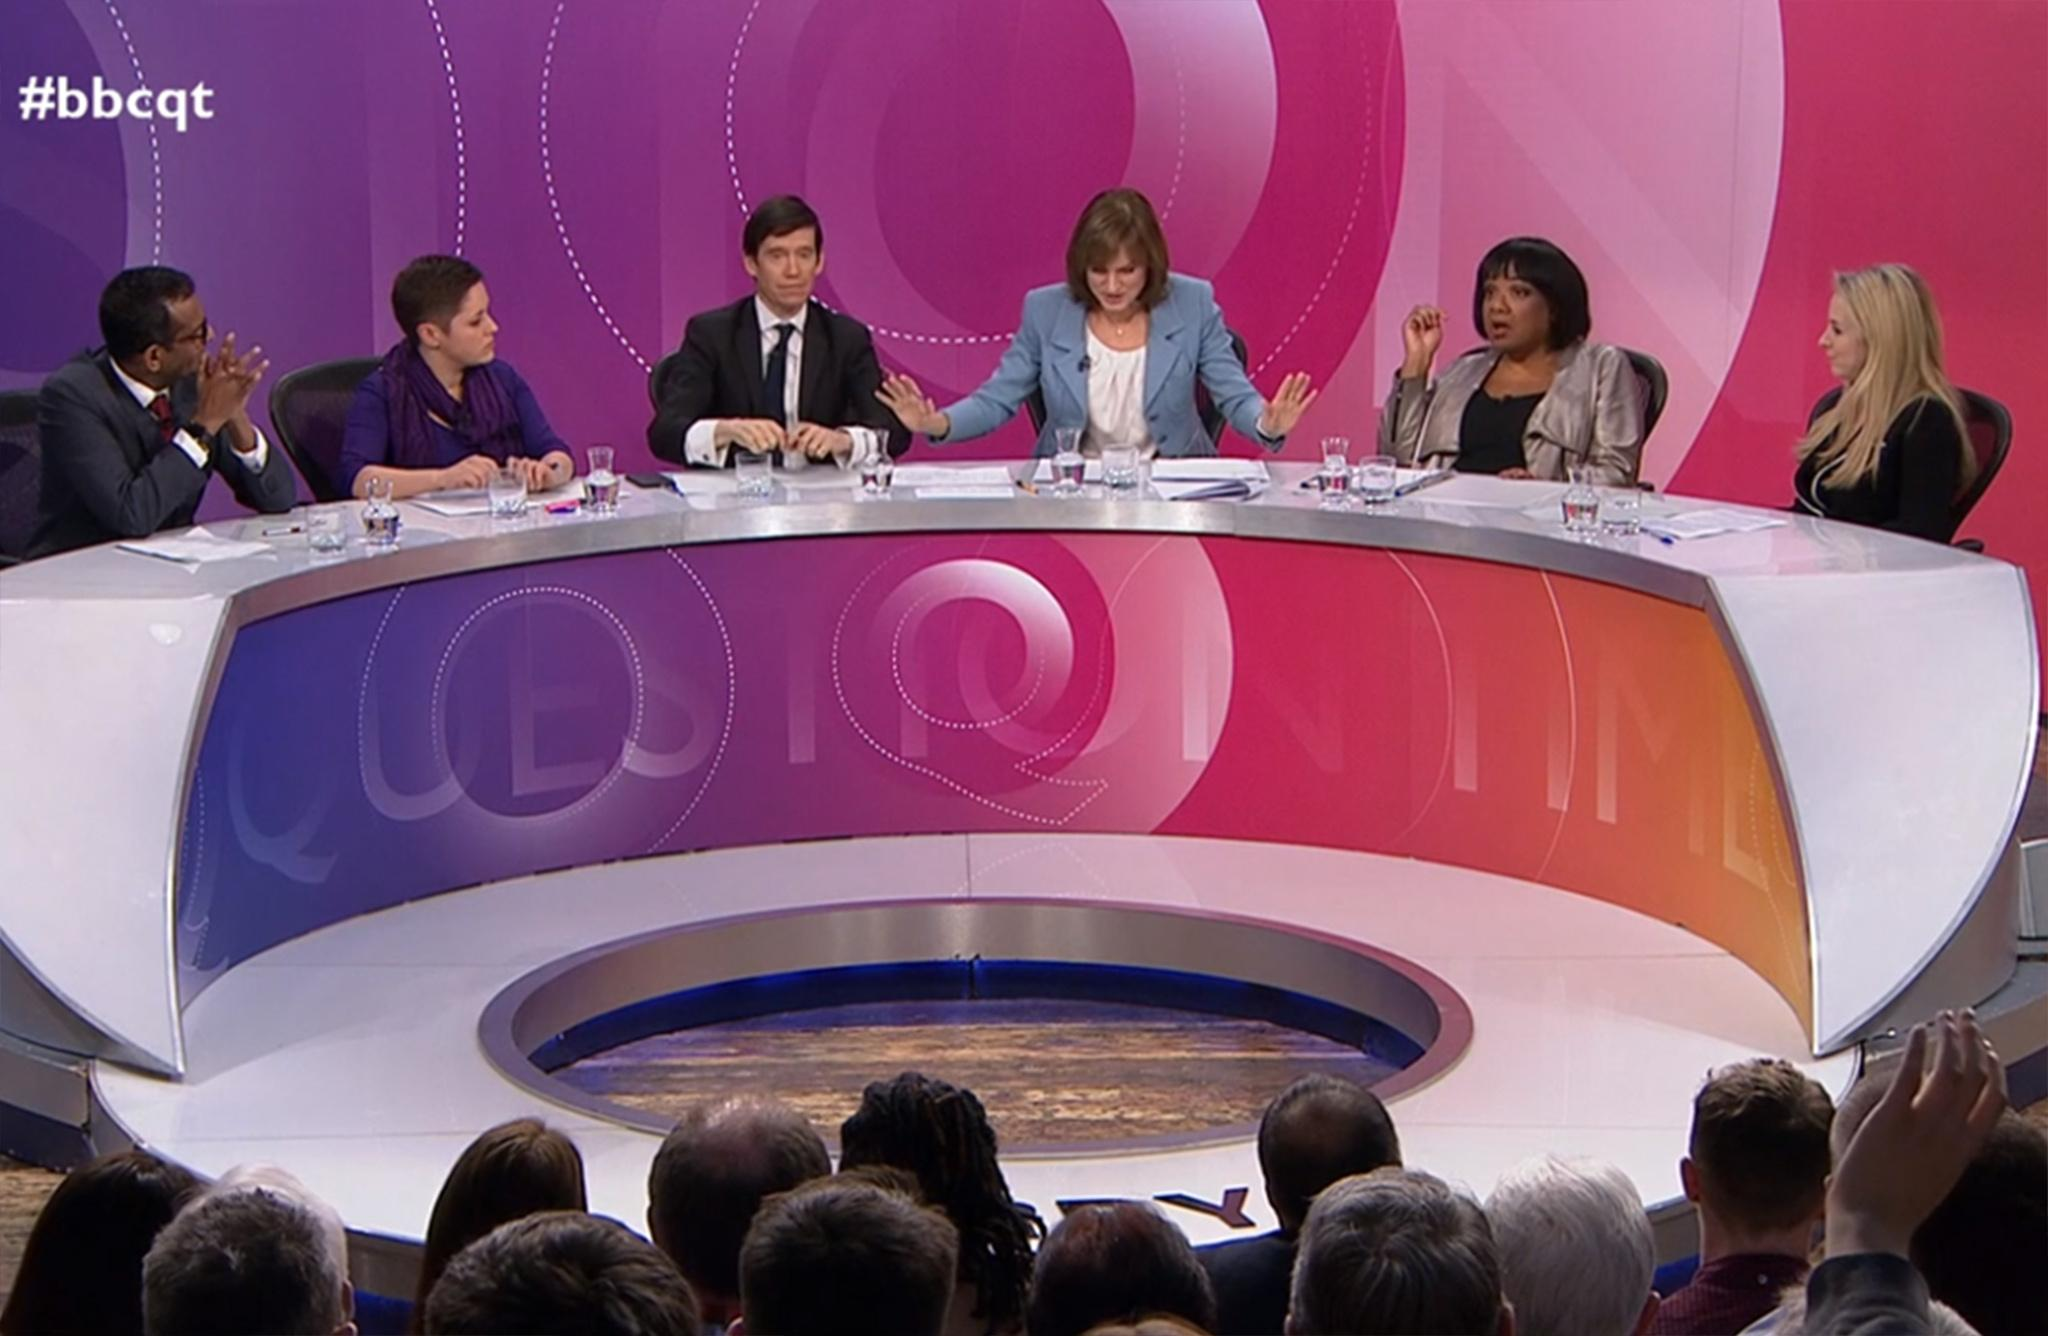 Labour requests BBC footage of Fiona Bruce Question Time 'joke' about Diane Abbott and demands on-air correction